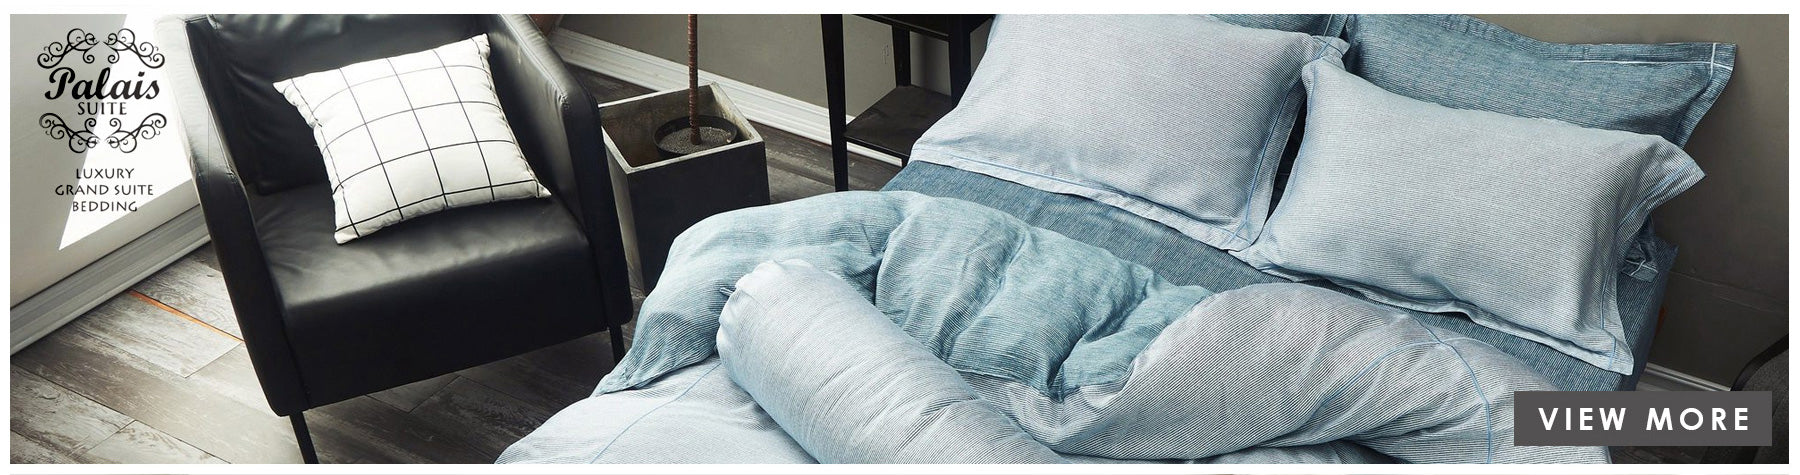 Palais Suite Bed Sheet Set